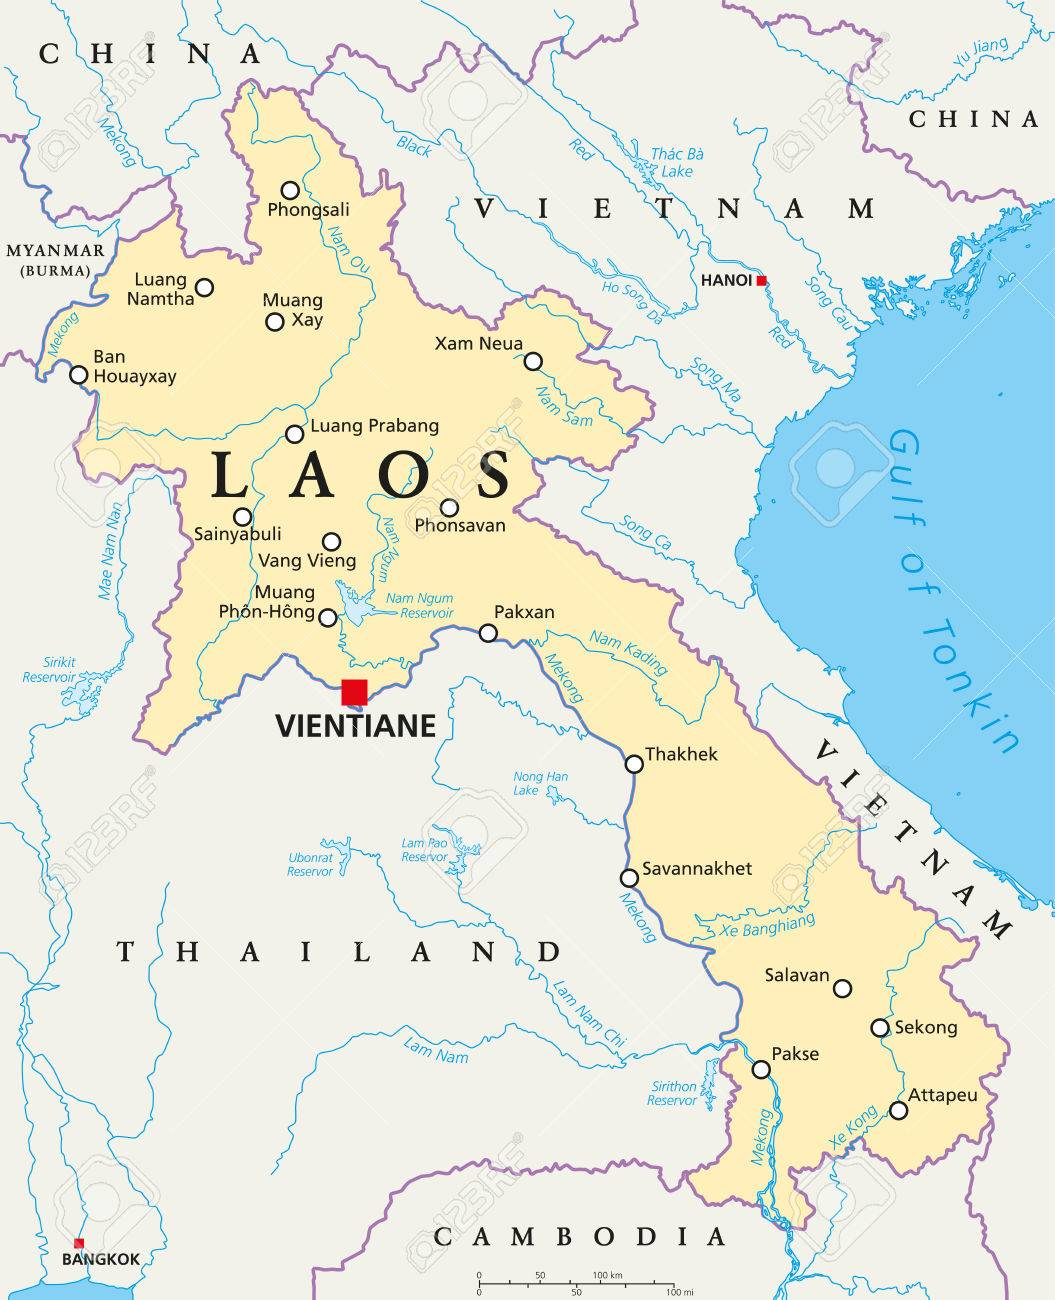 laos political map with capital vientiane national borders important cities rivers and lakes